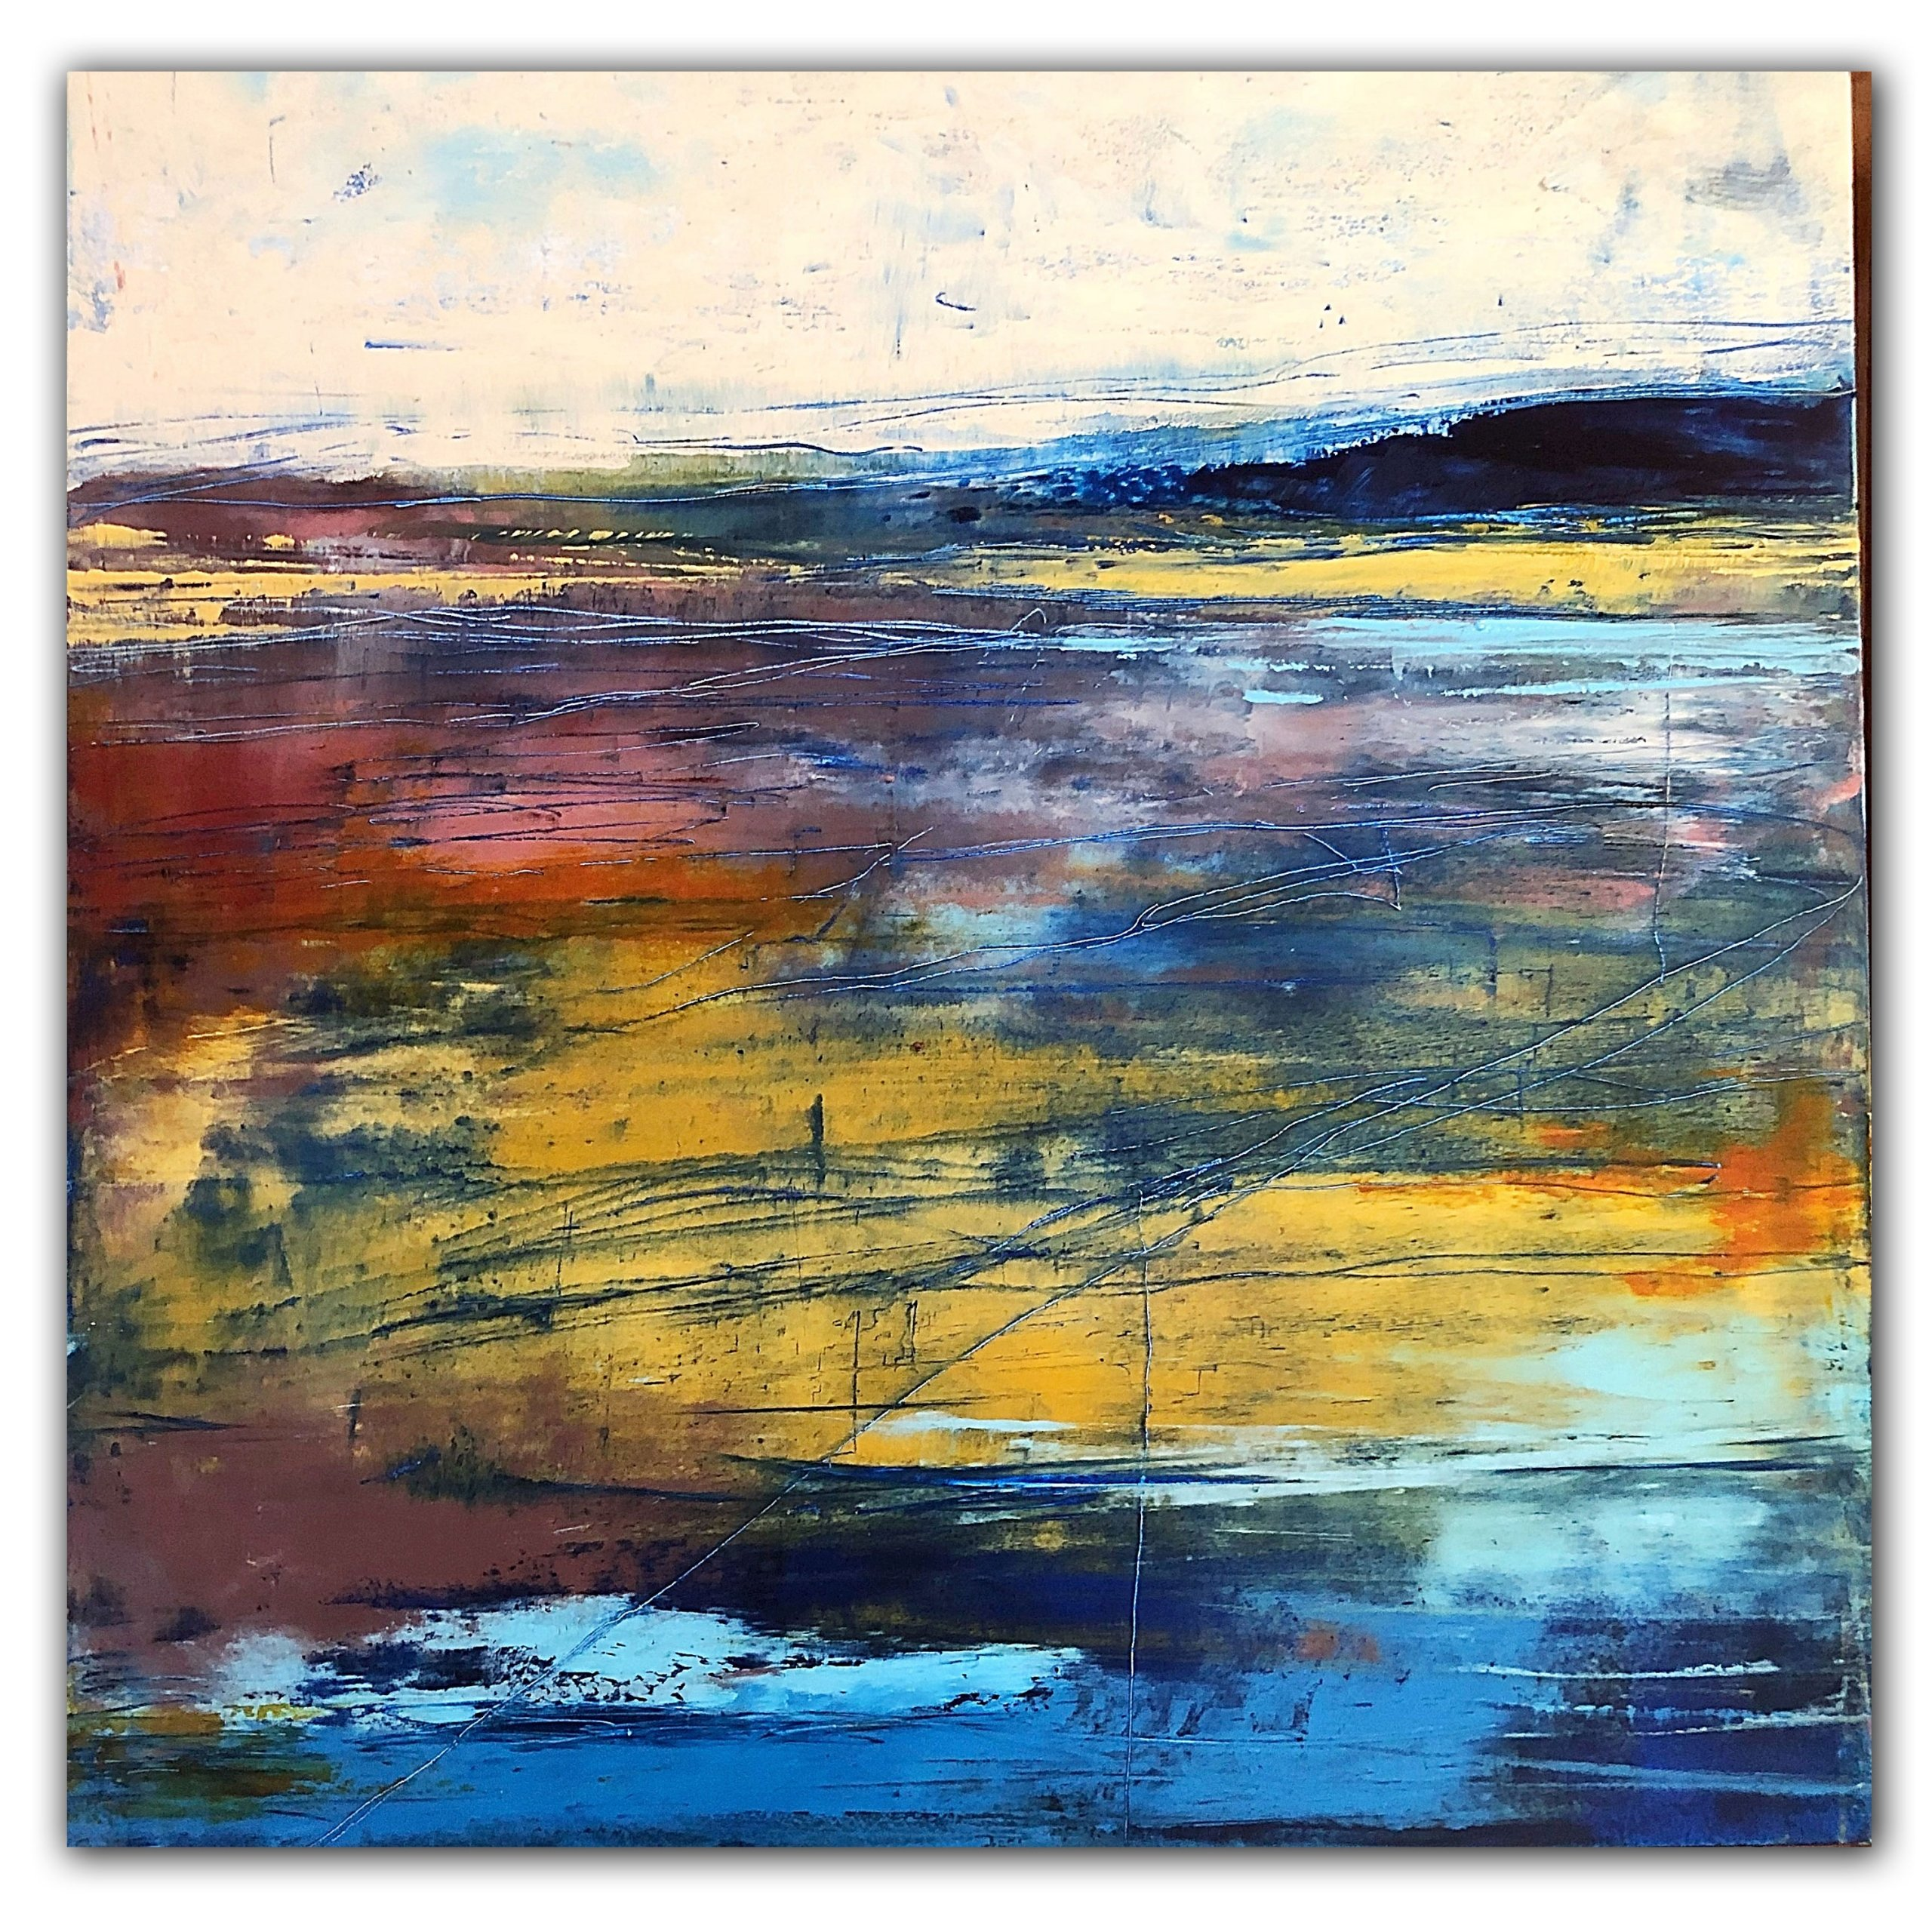 Colorful landscape abstract oil painting by Jaime Byrd